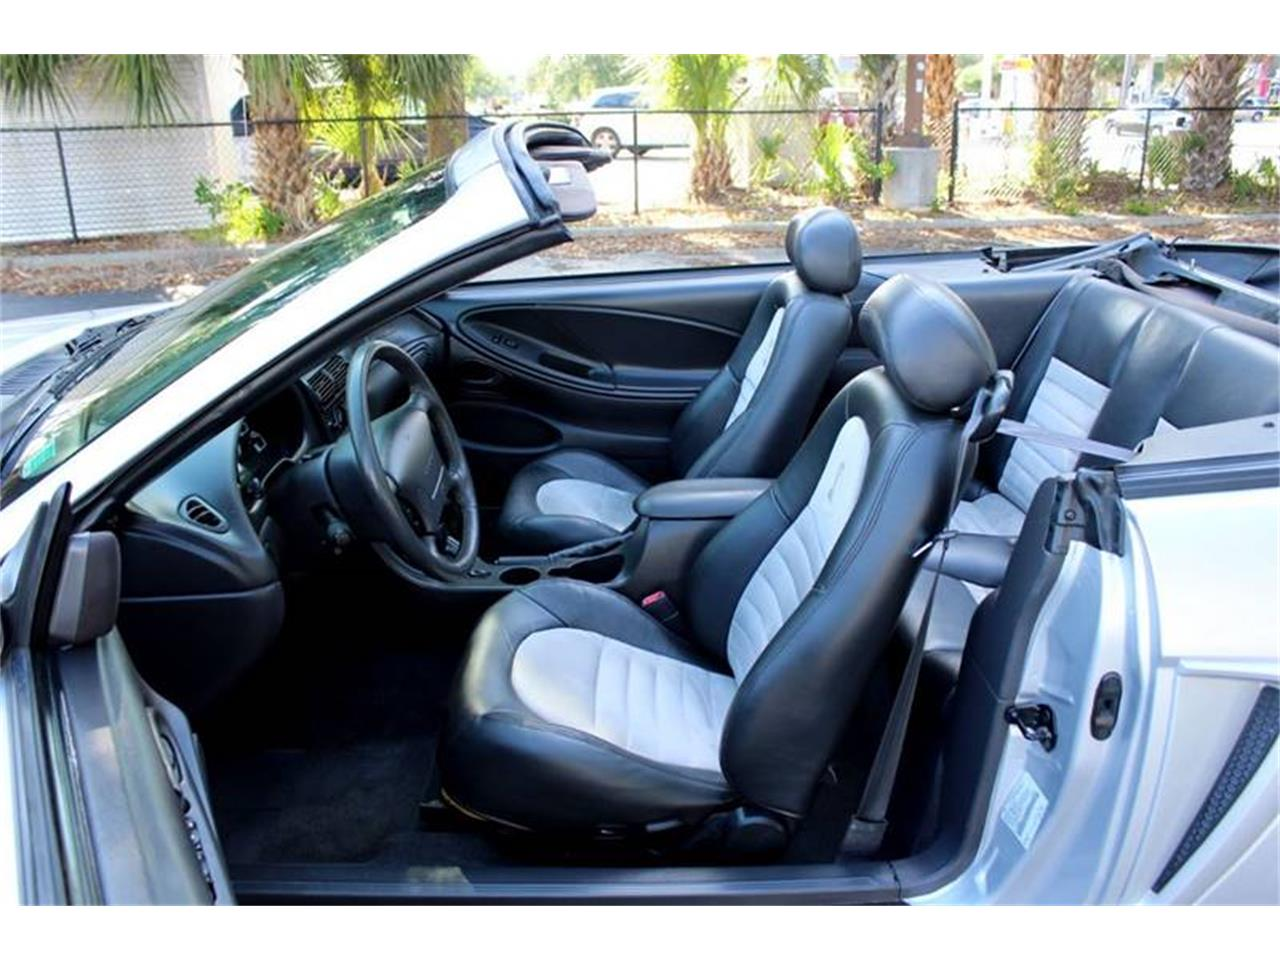 Large Picture of 2001 Mustang SVT Cobra located in Florida Offered by PJ's Auto World - PYE0